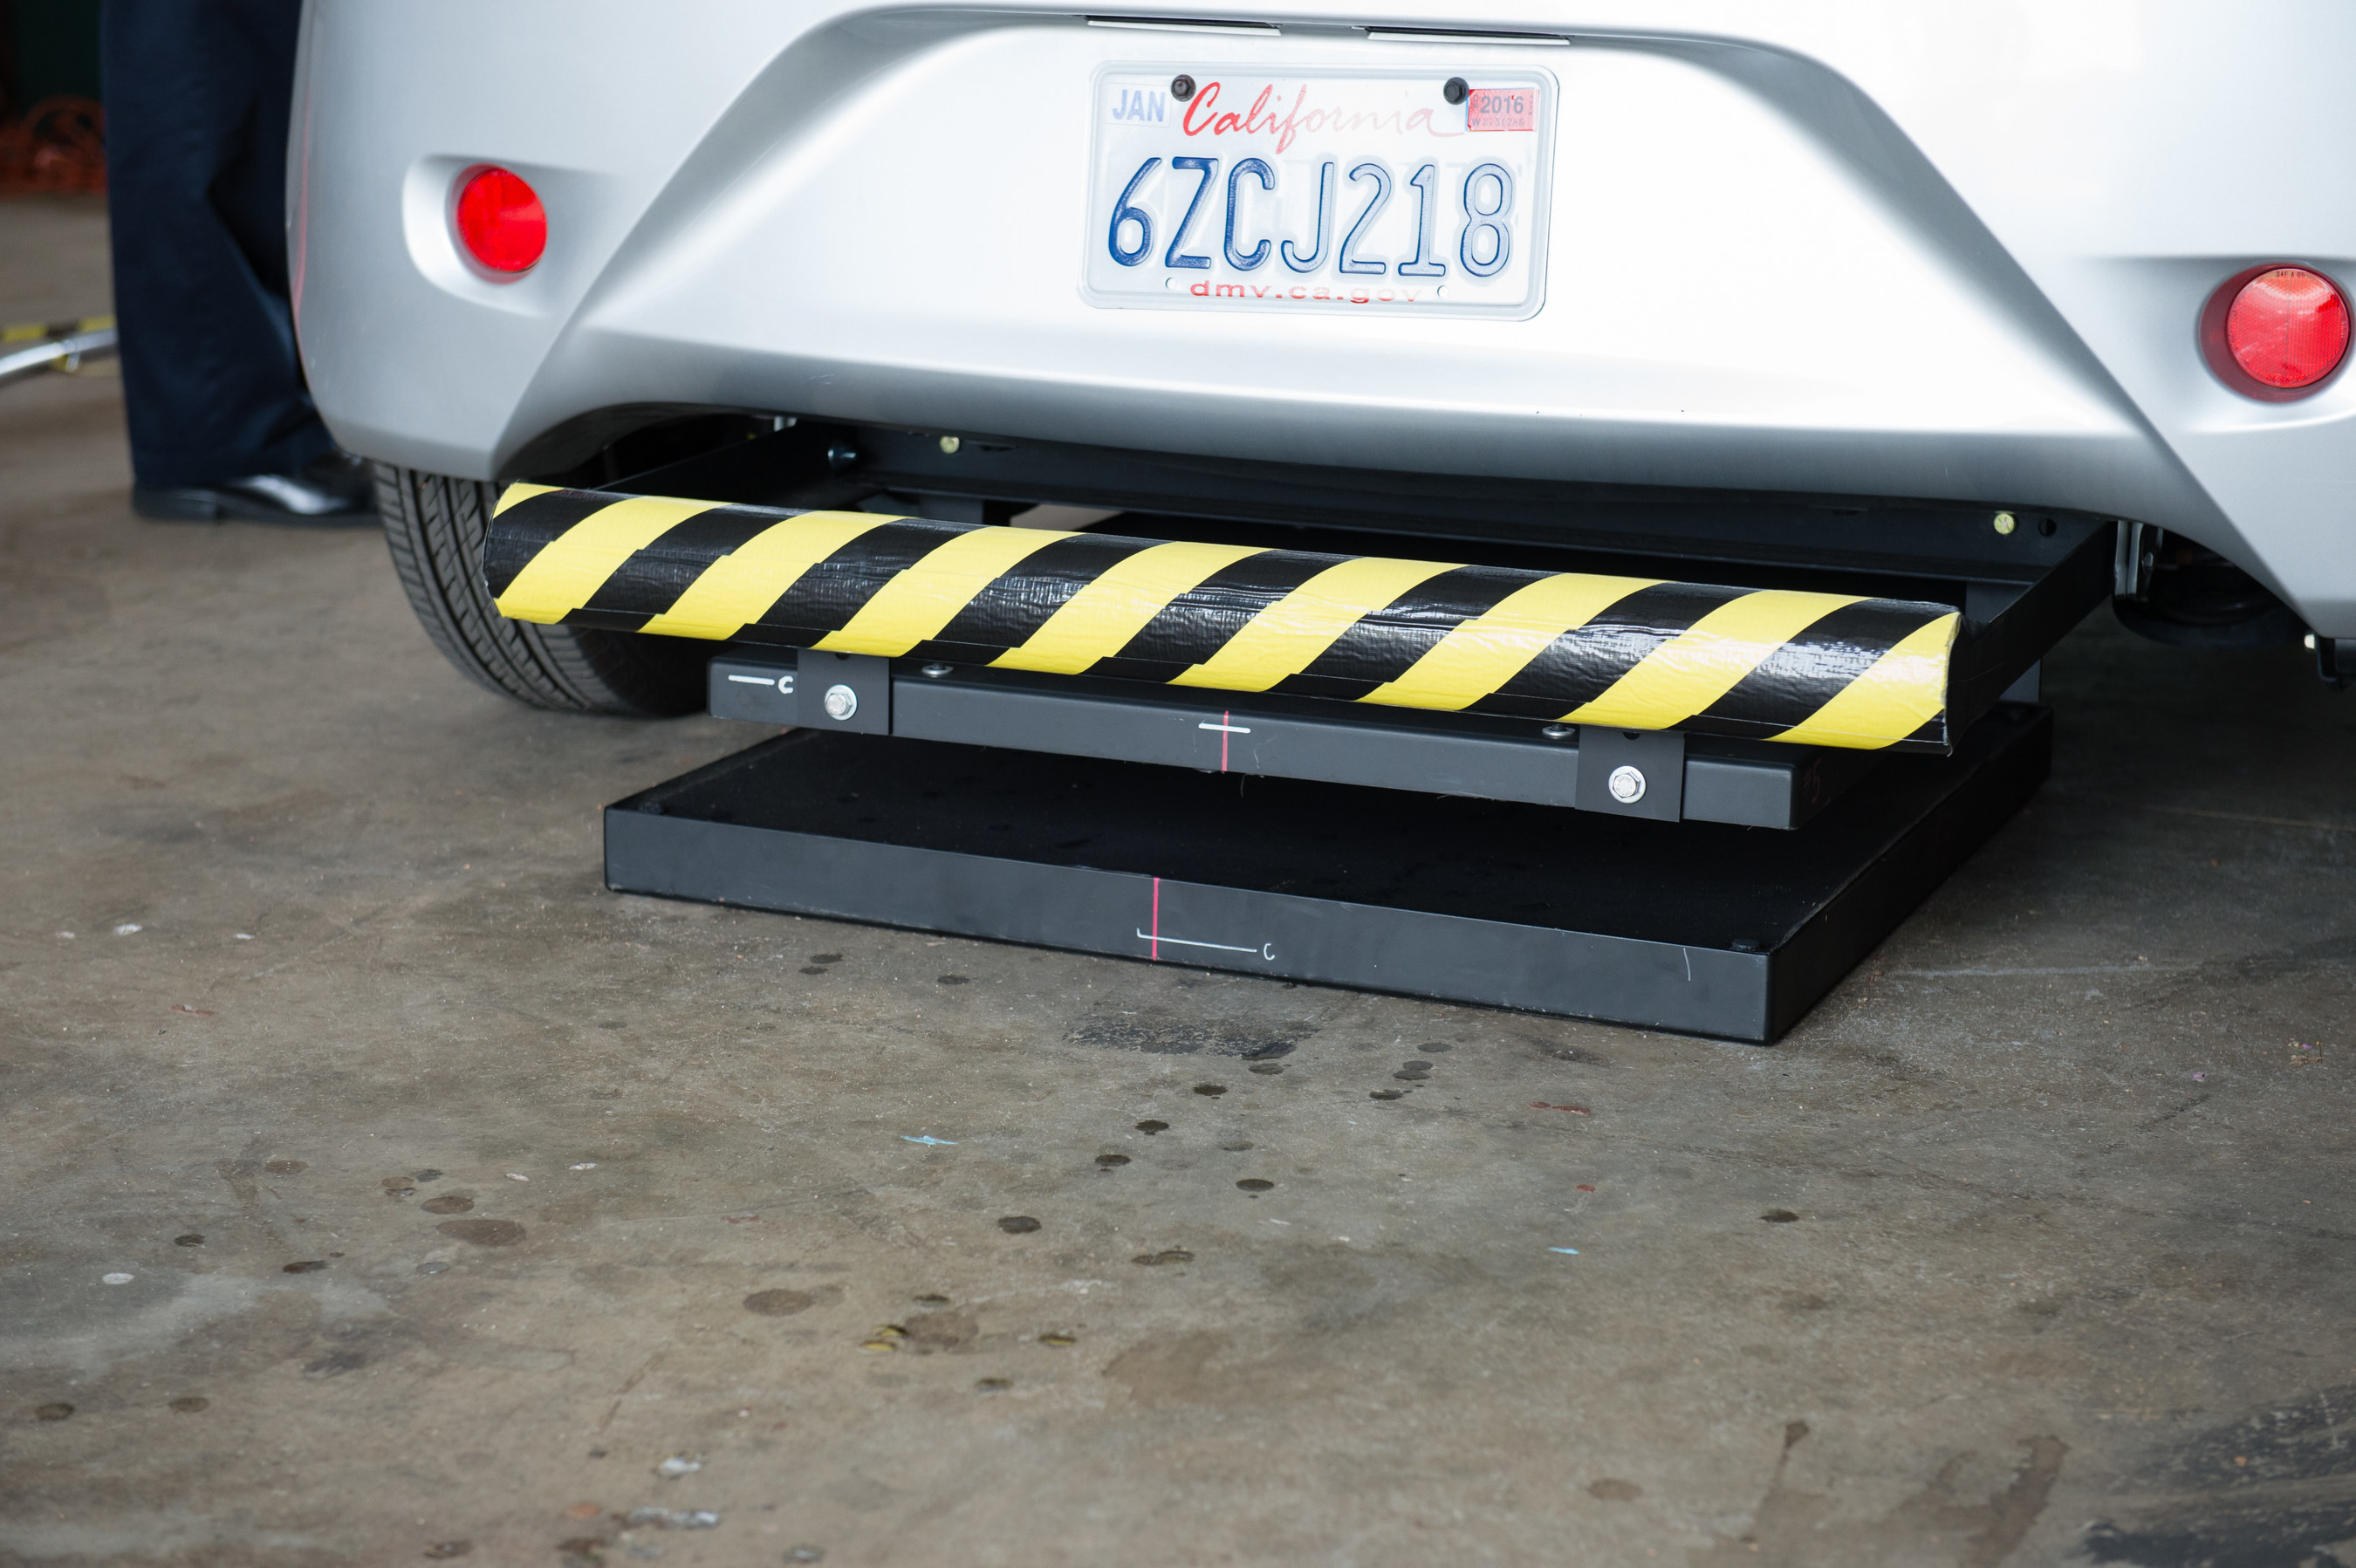 ITIC Automotive Test Bed Offers Wireless Charging As a Service